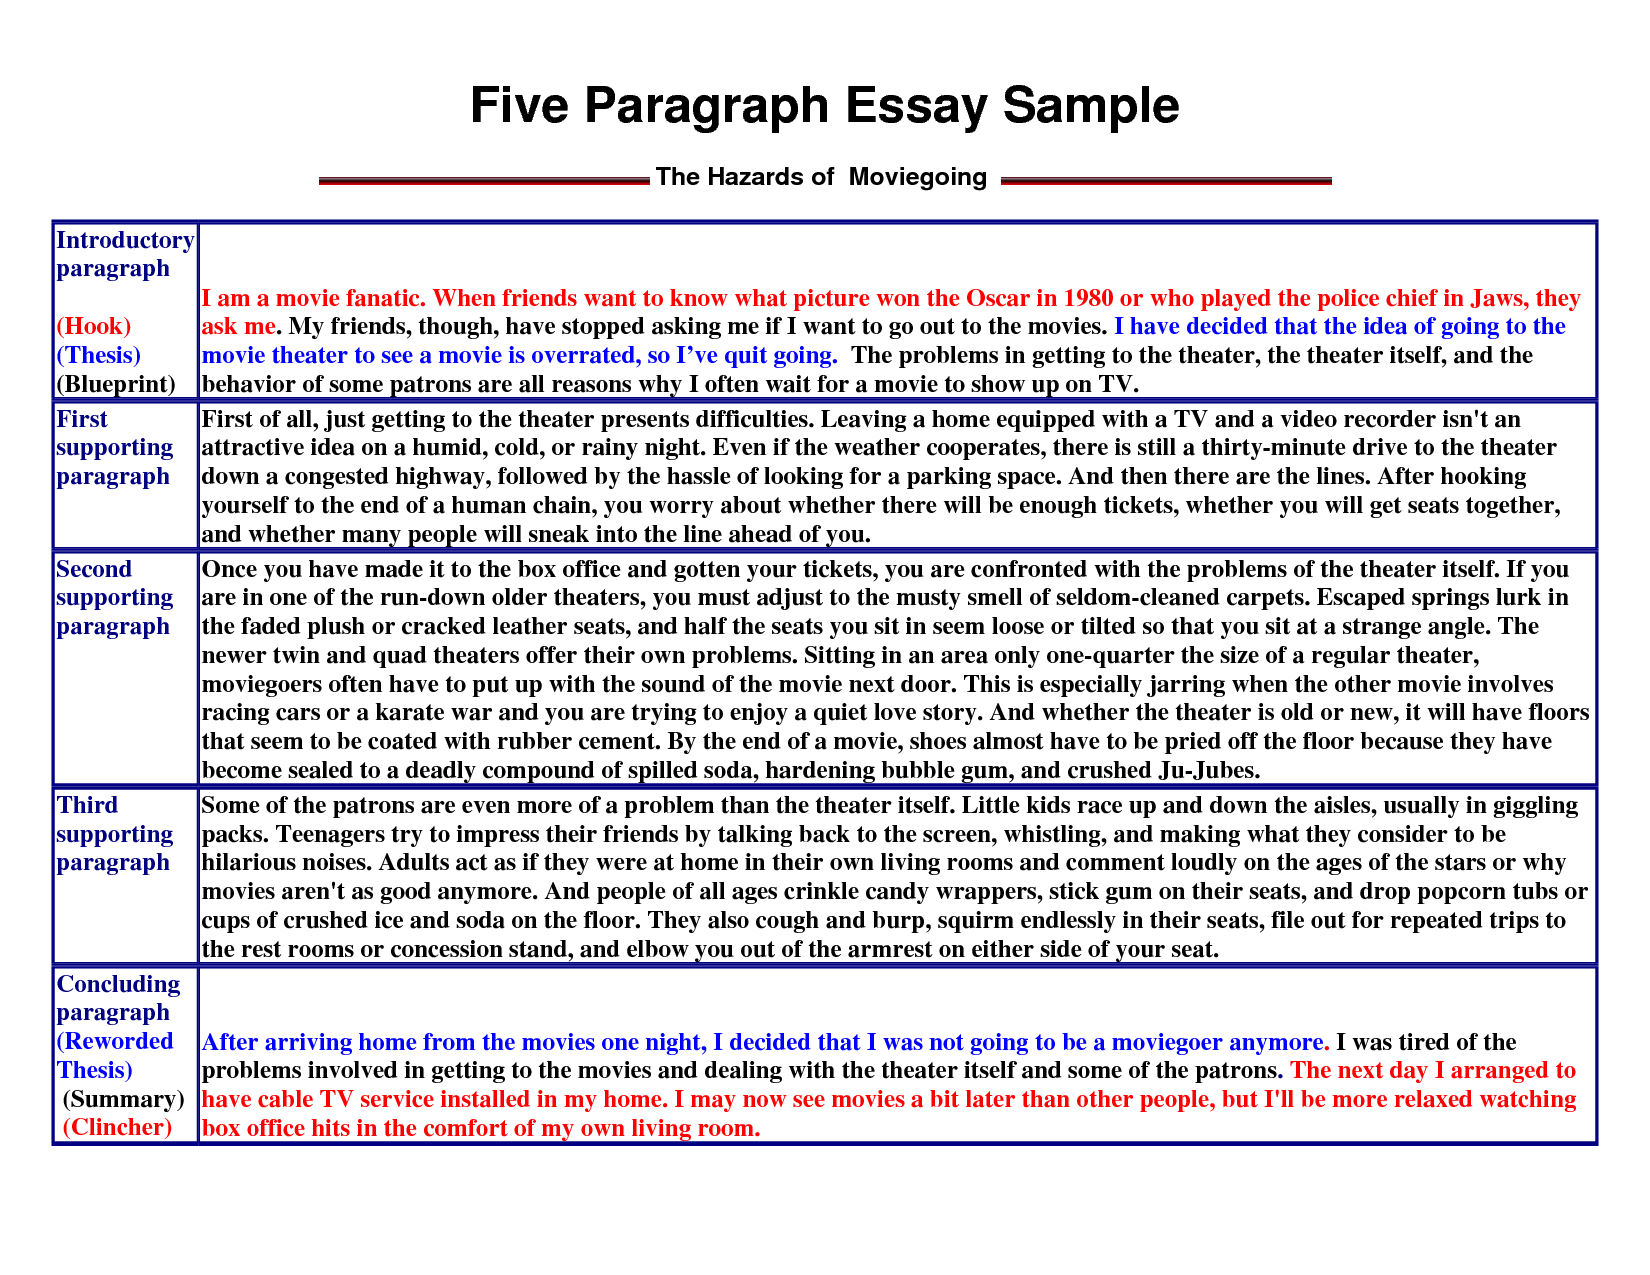 016 Paragraph Essay Singular 5 Template For High School Example Doc Full